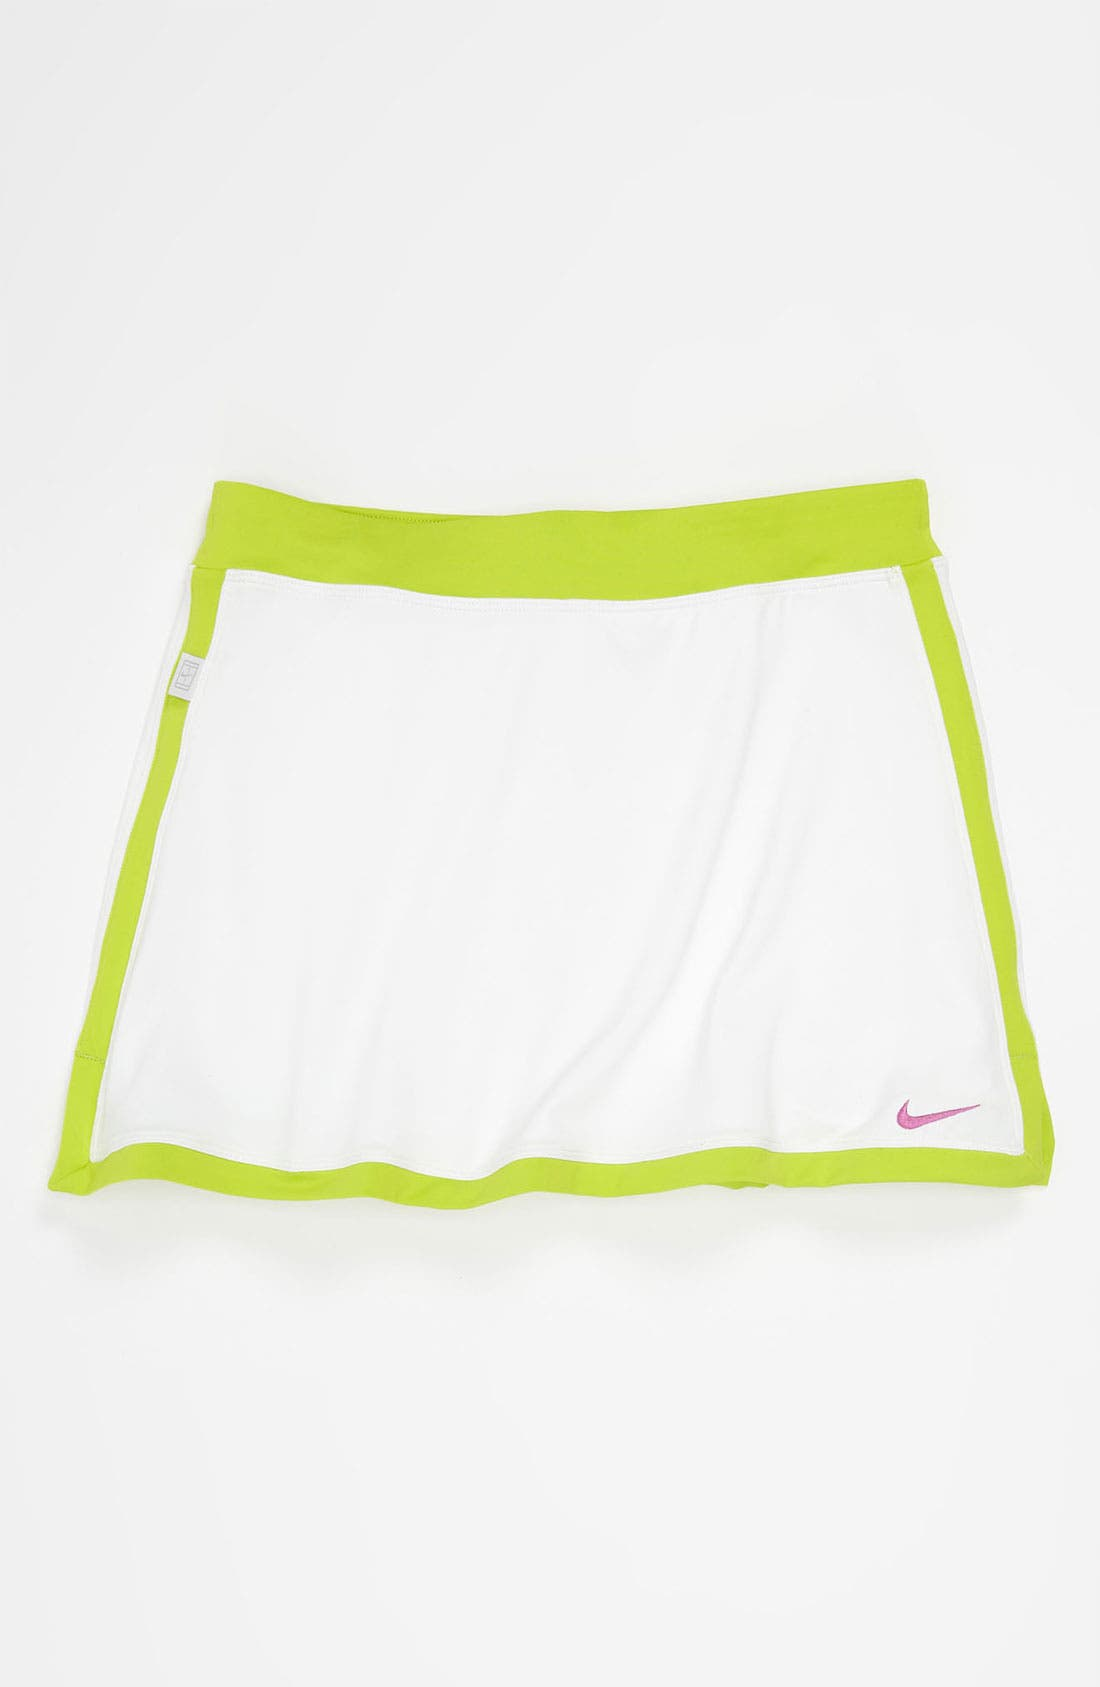 Alternate Image 1 Selected - Nike 'Border' Tennis Skirt (Big Girls)